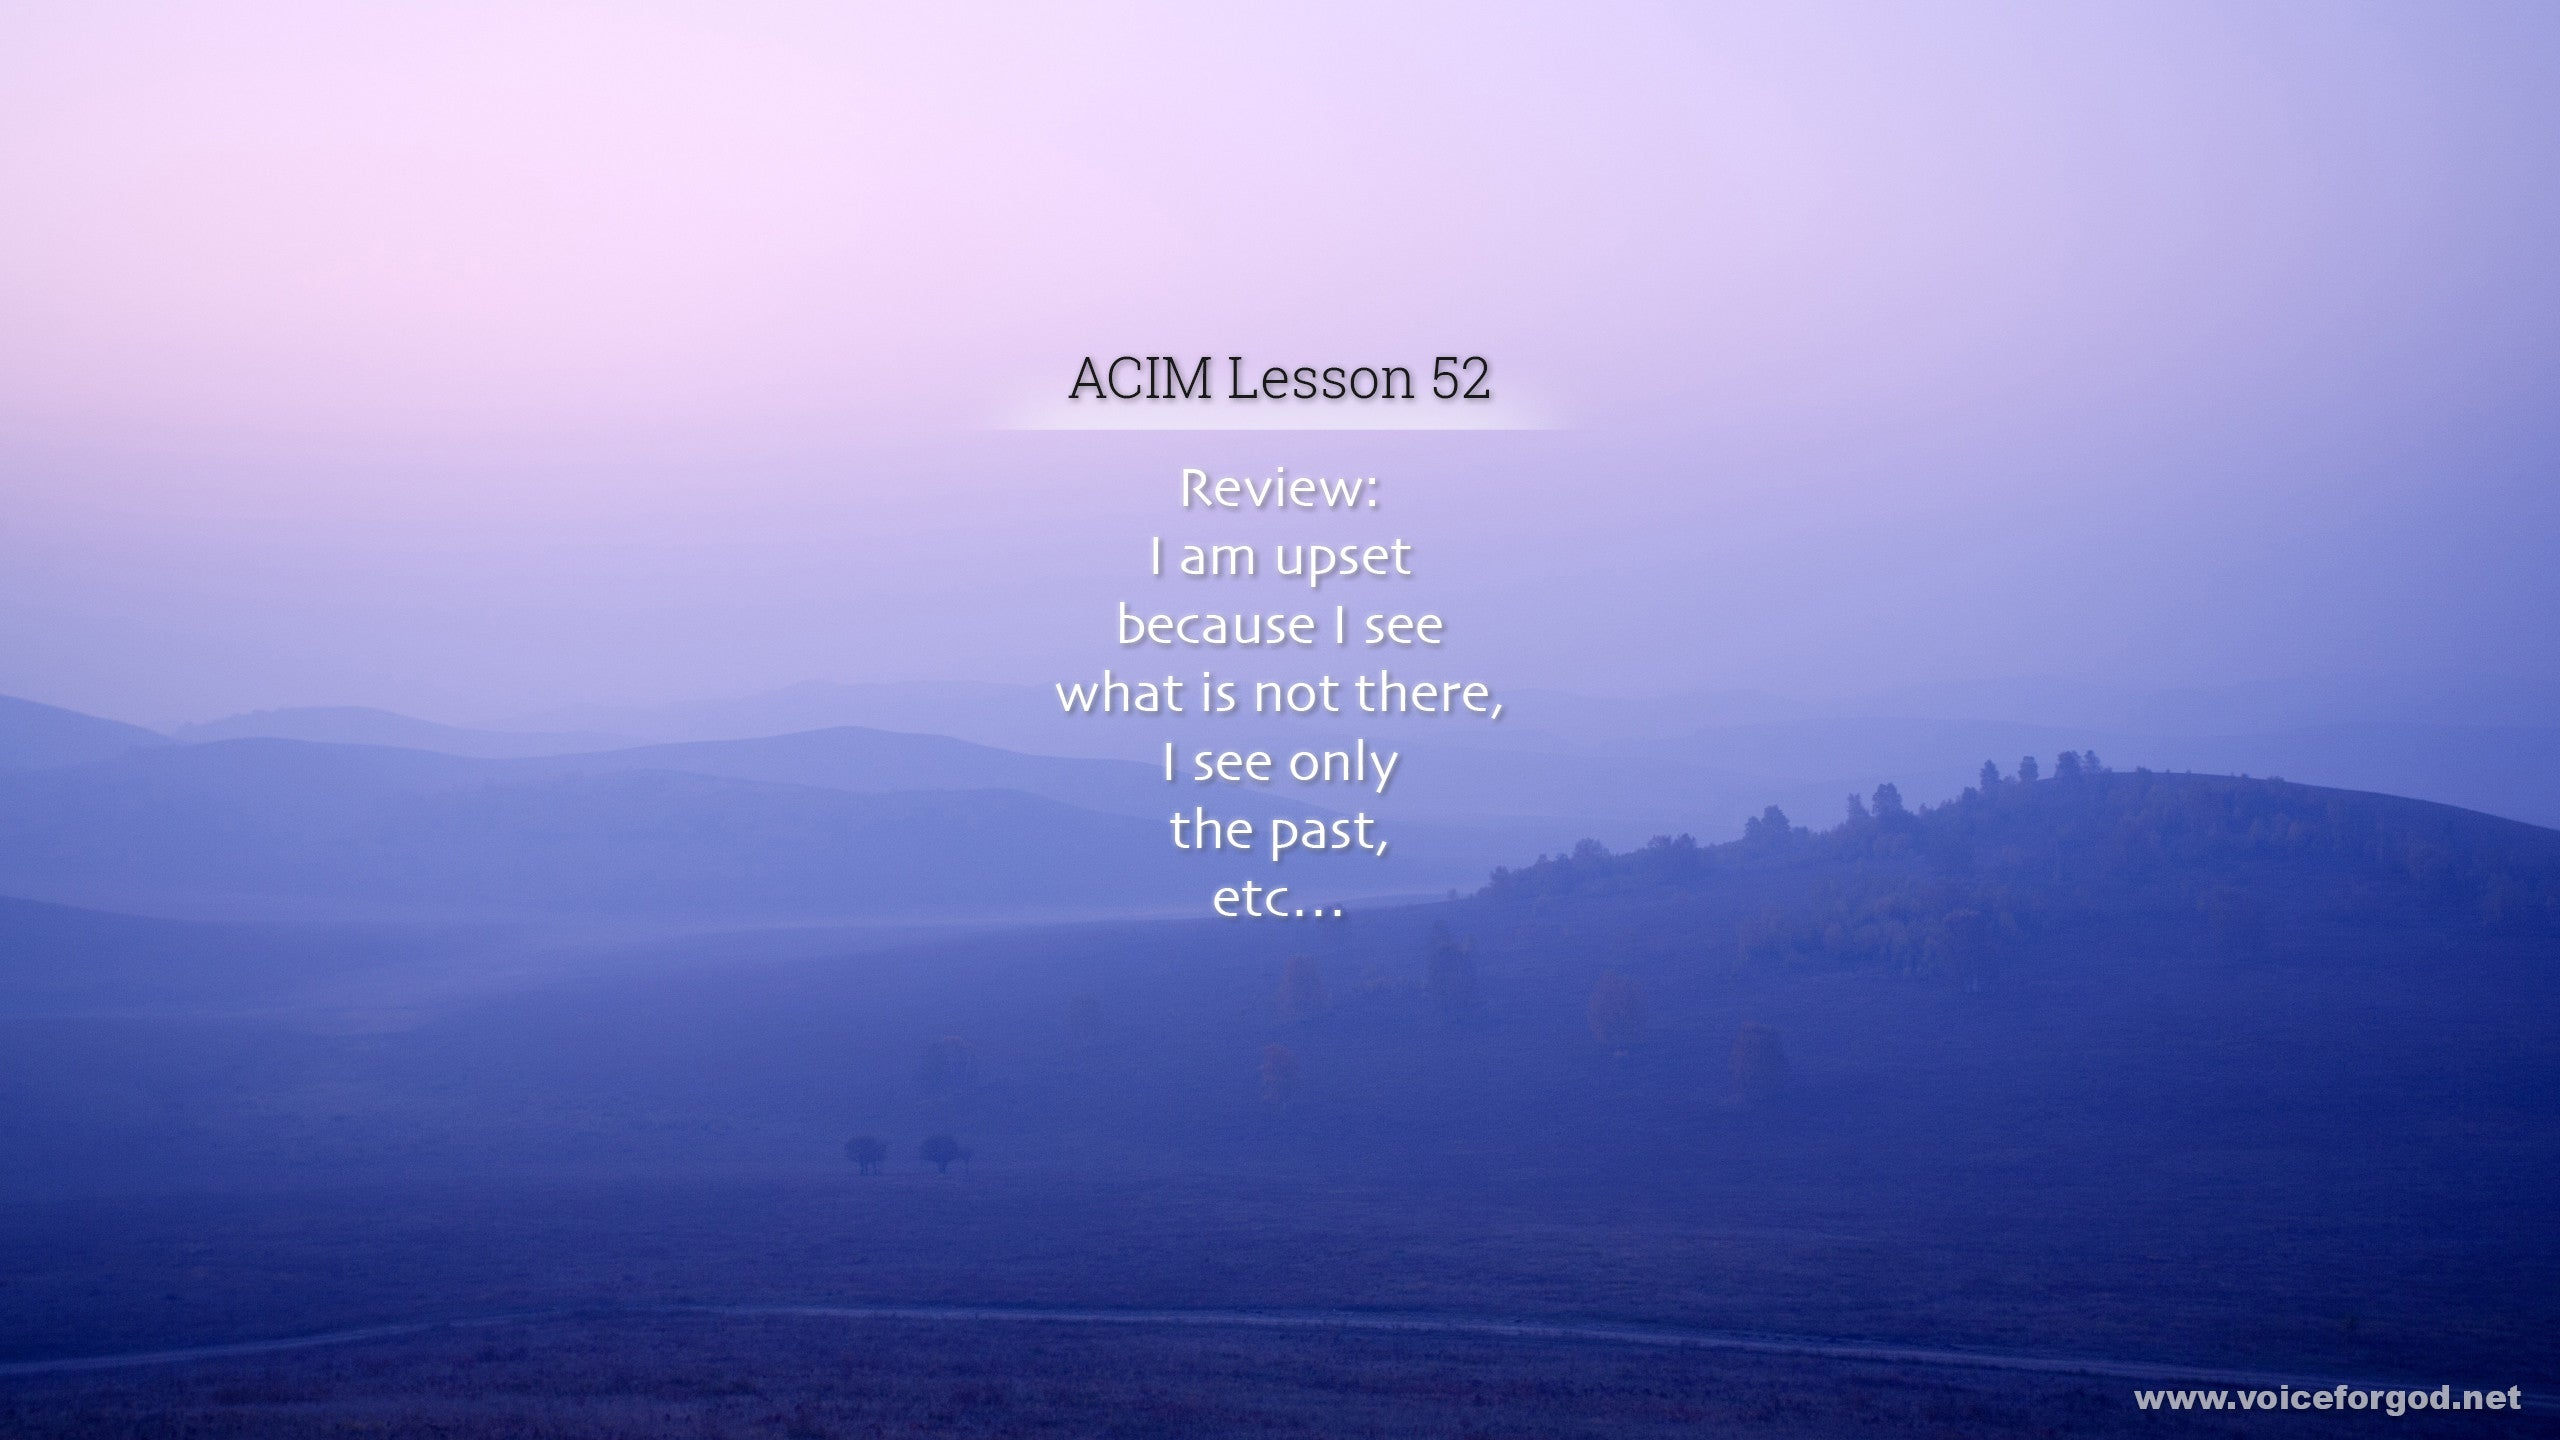 ACIM Lesson 52 - A Course in Miracles Workbook Lesson 52